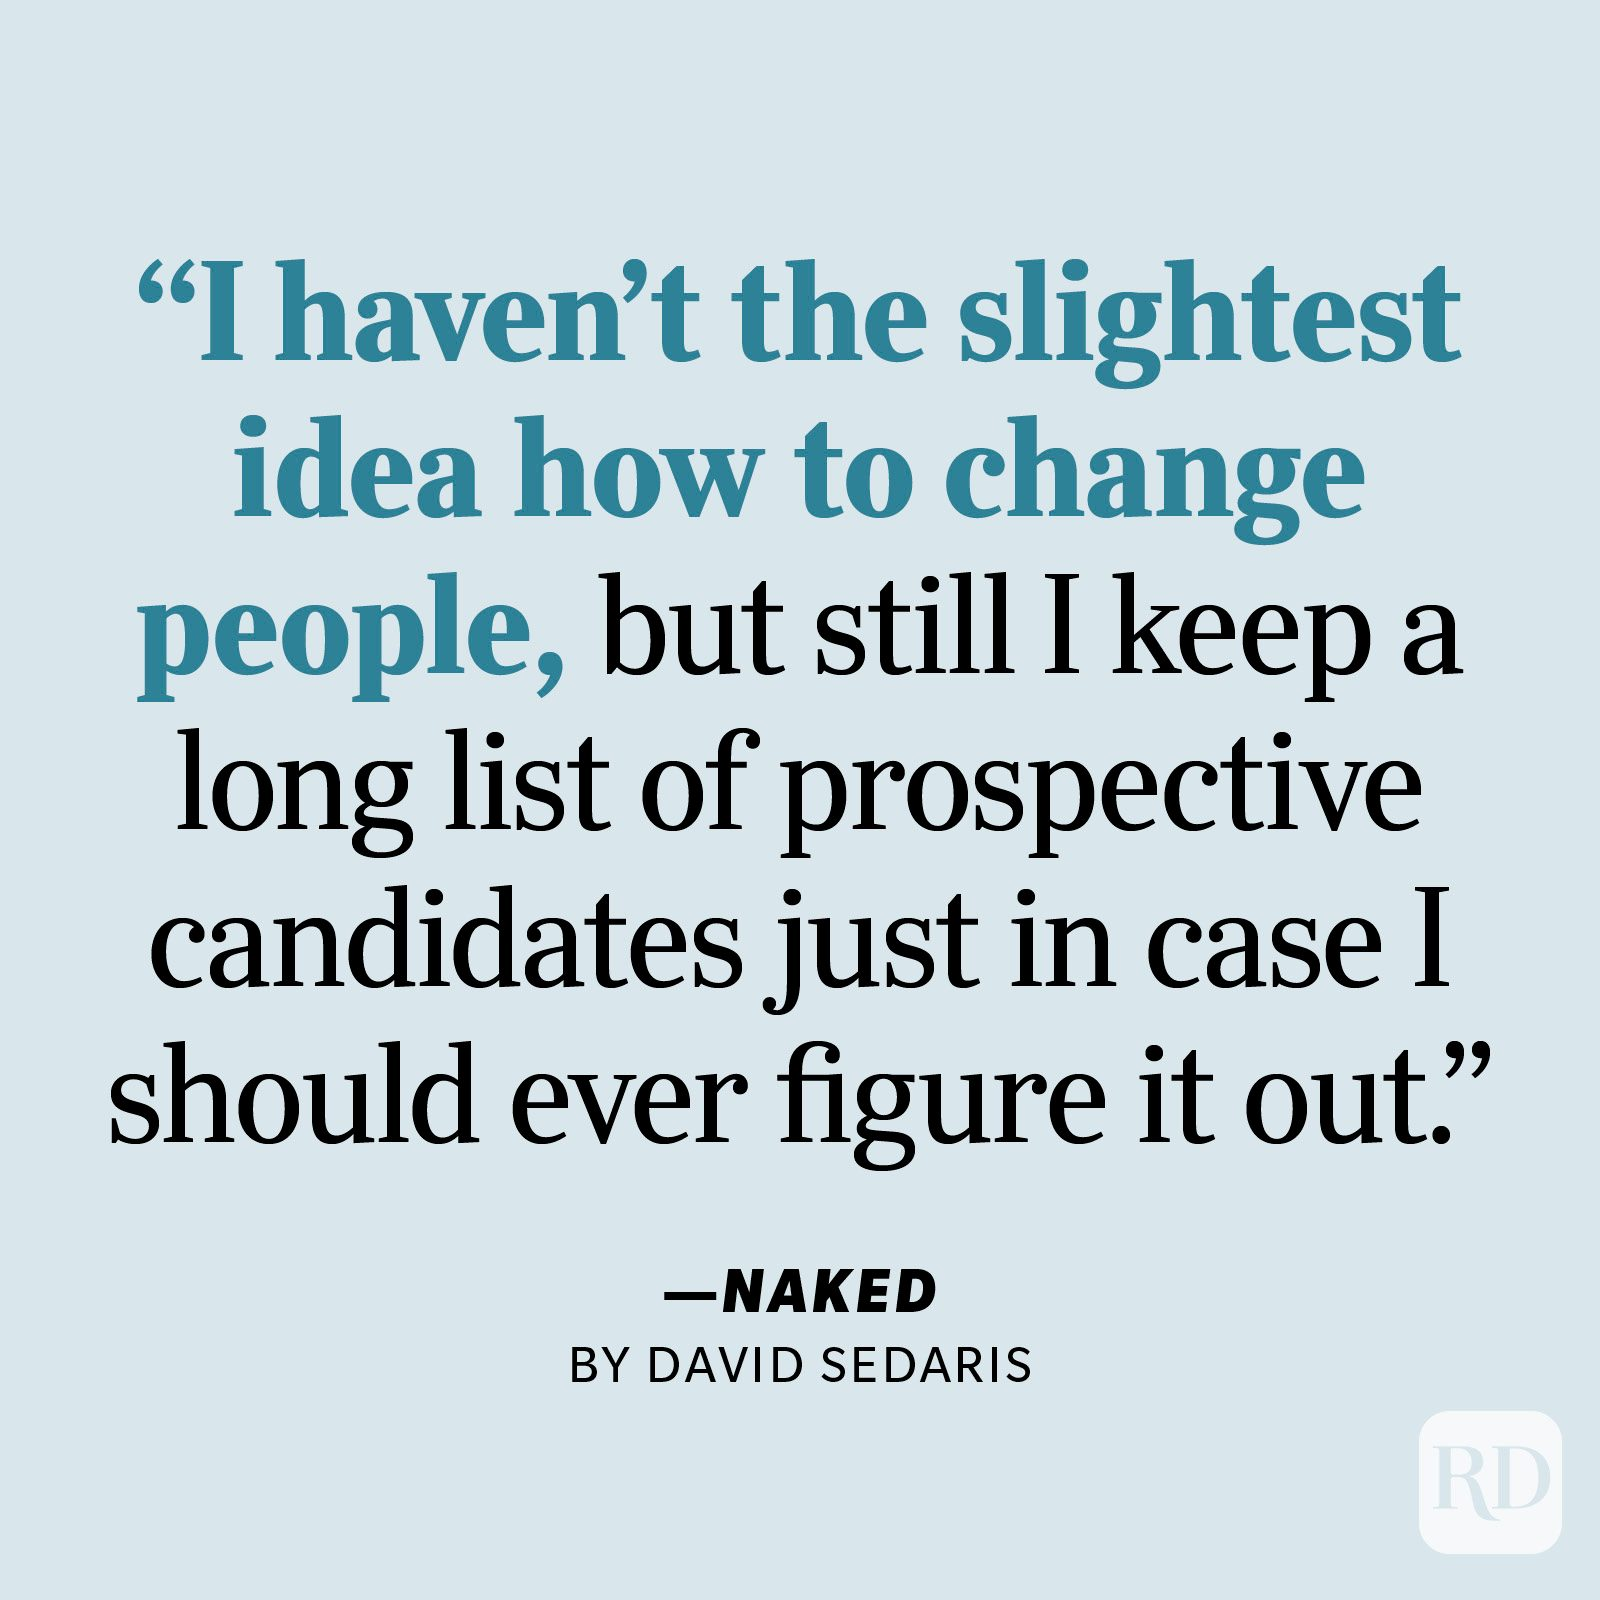 """Naked by David Sedaris     """"I haven't the slightest idea how to change people, but still I keep a long list of prospective candidates just in case I should ever figure it out."""""""